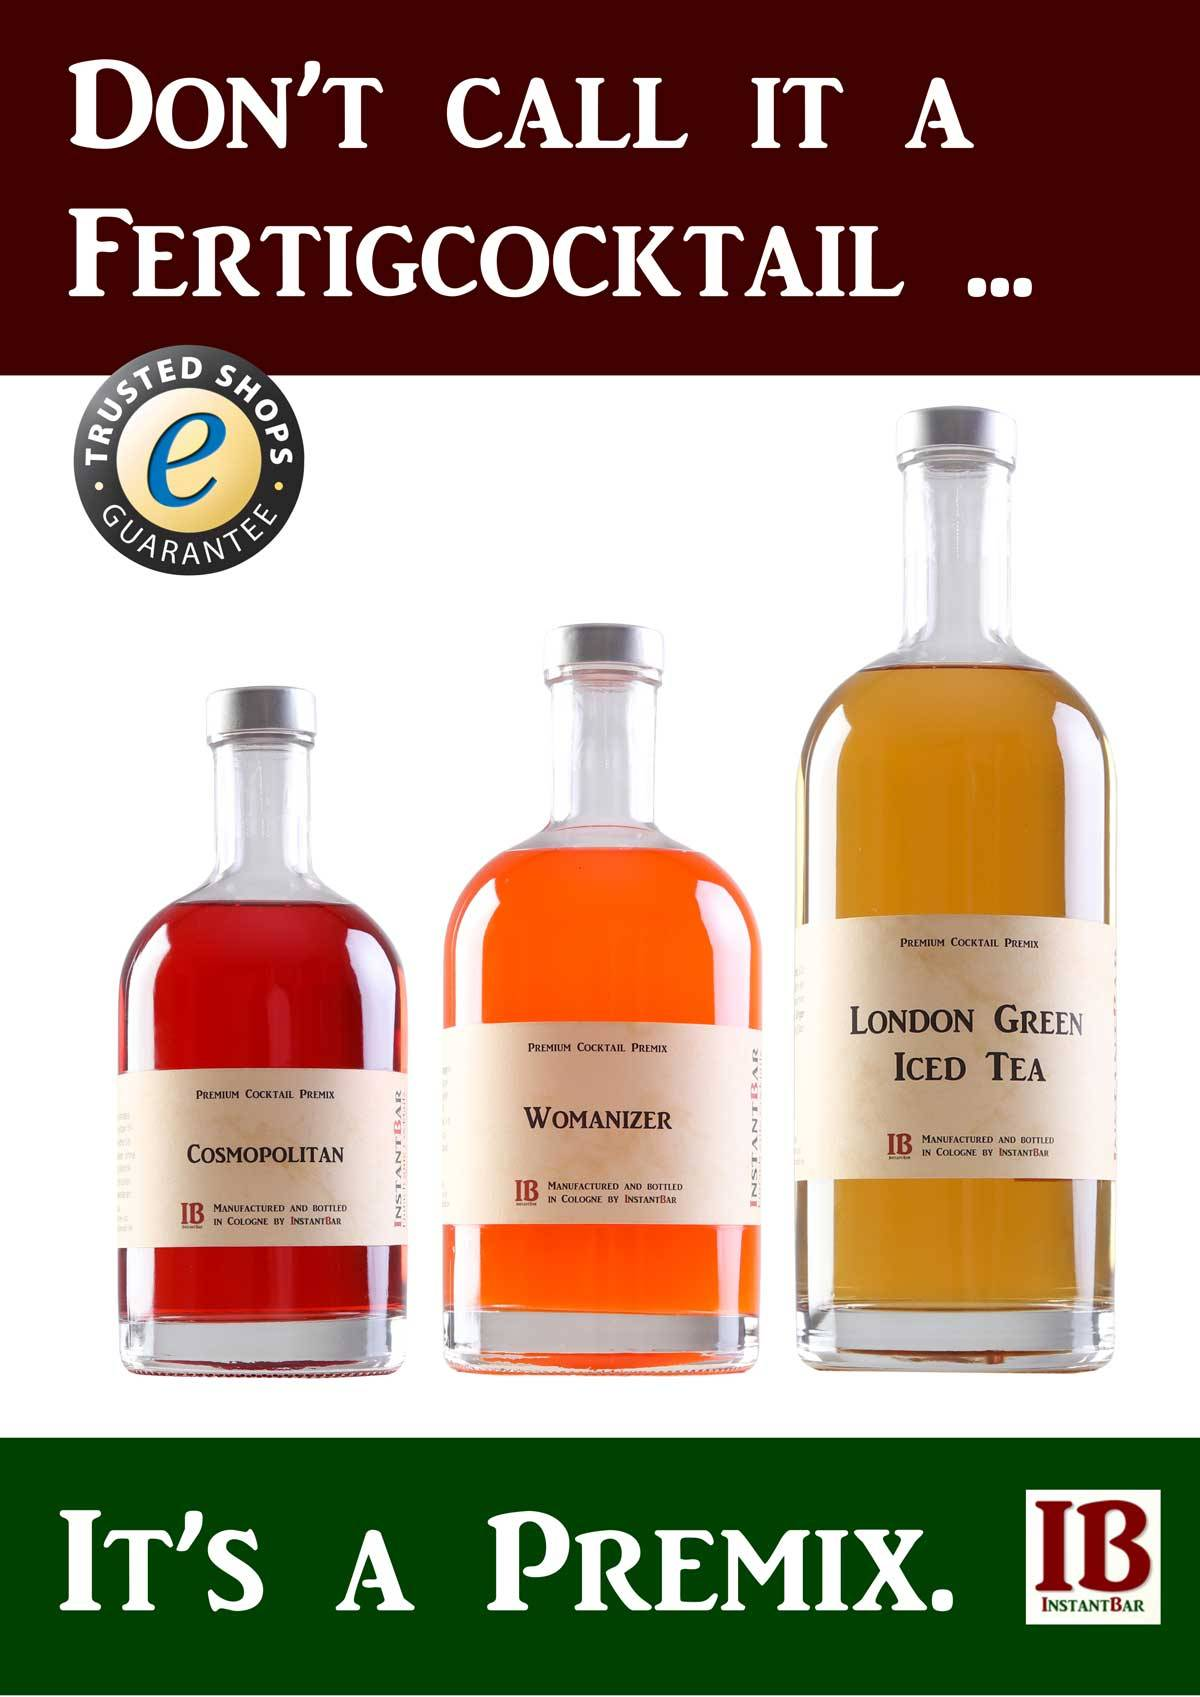 Cocktail Premix statt Fertigcocktail